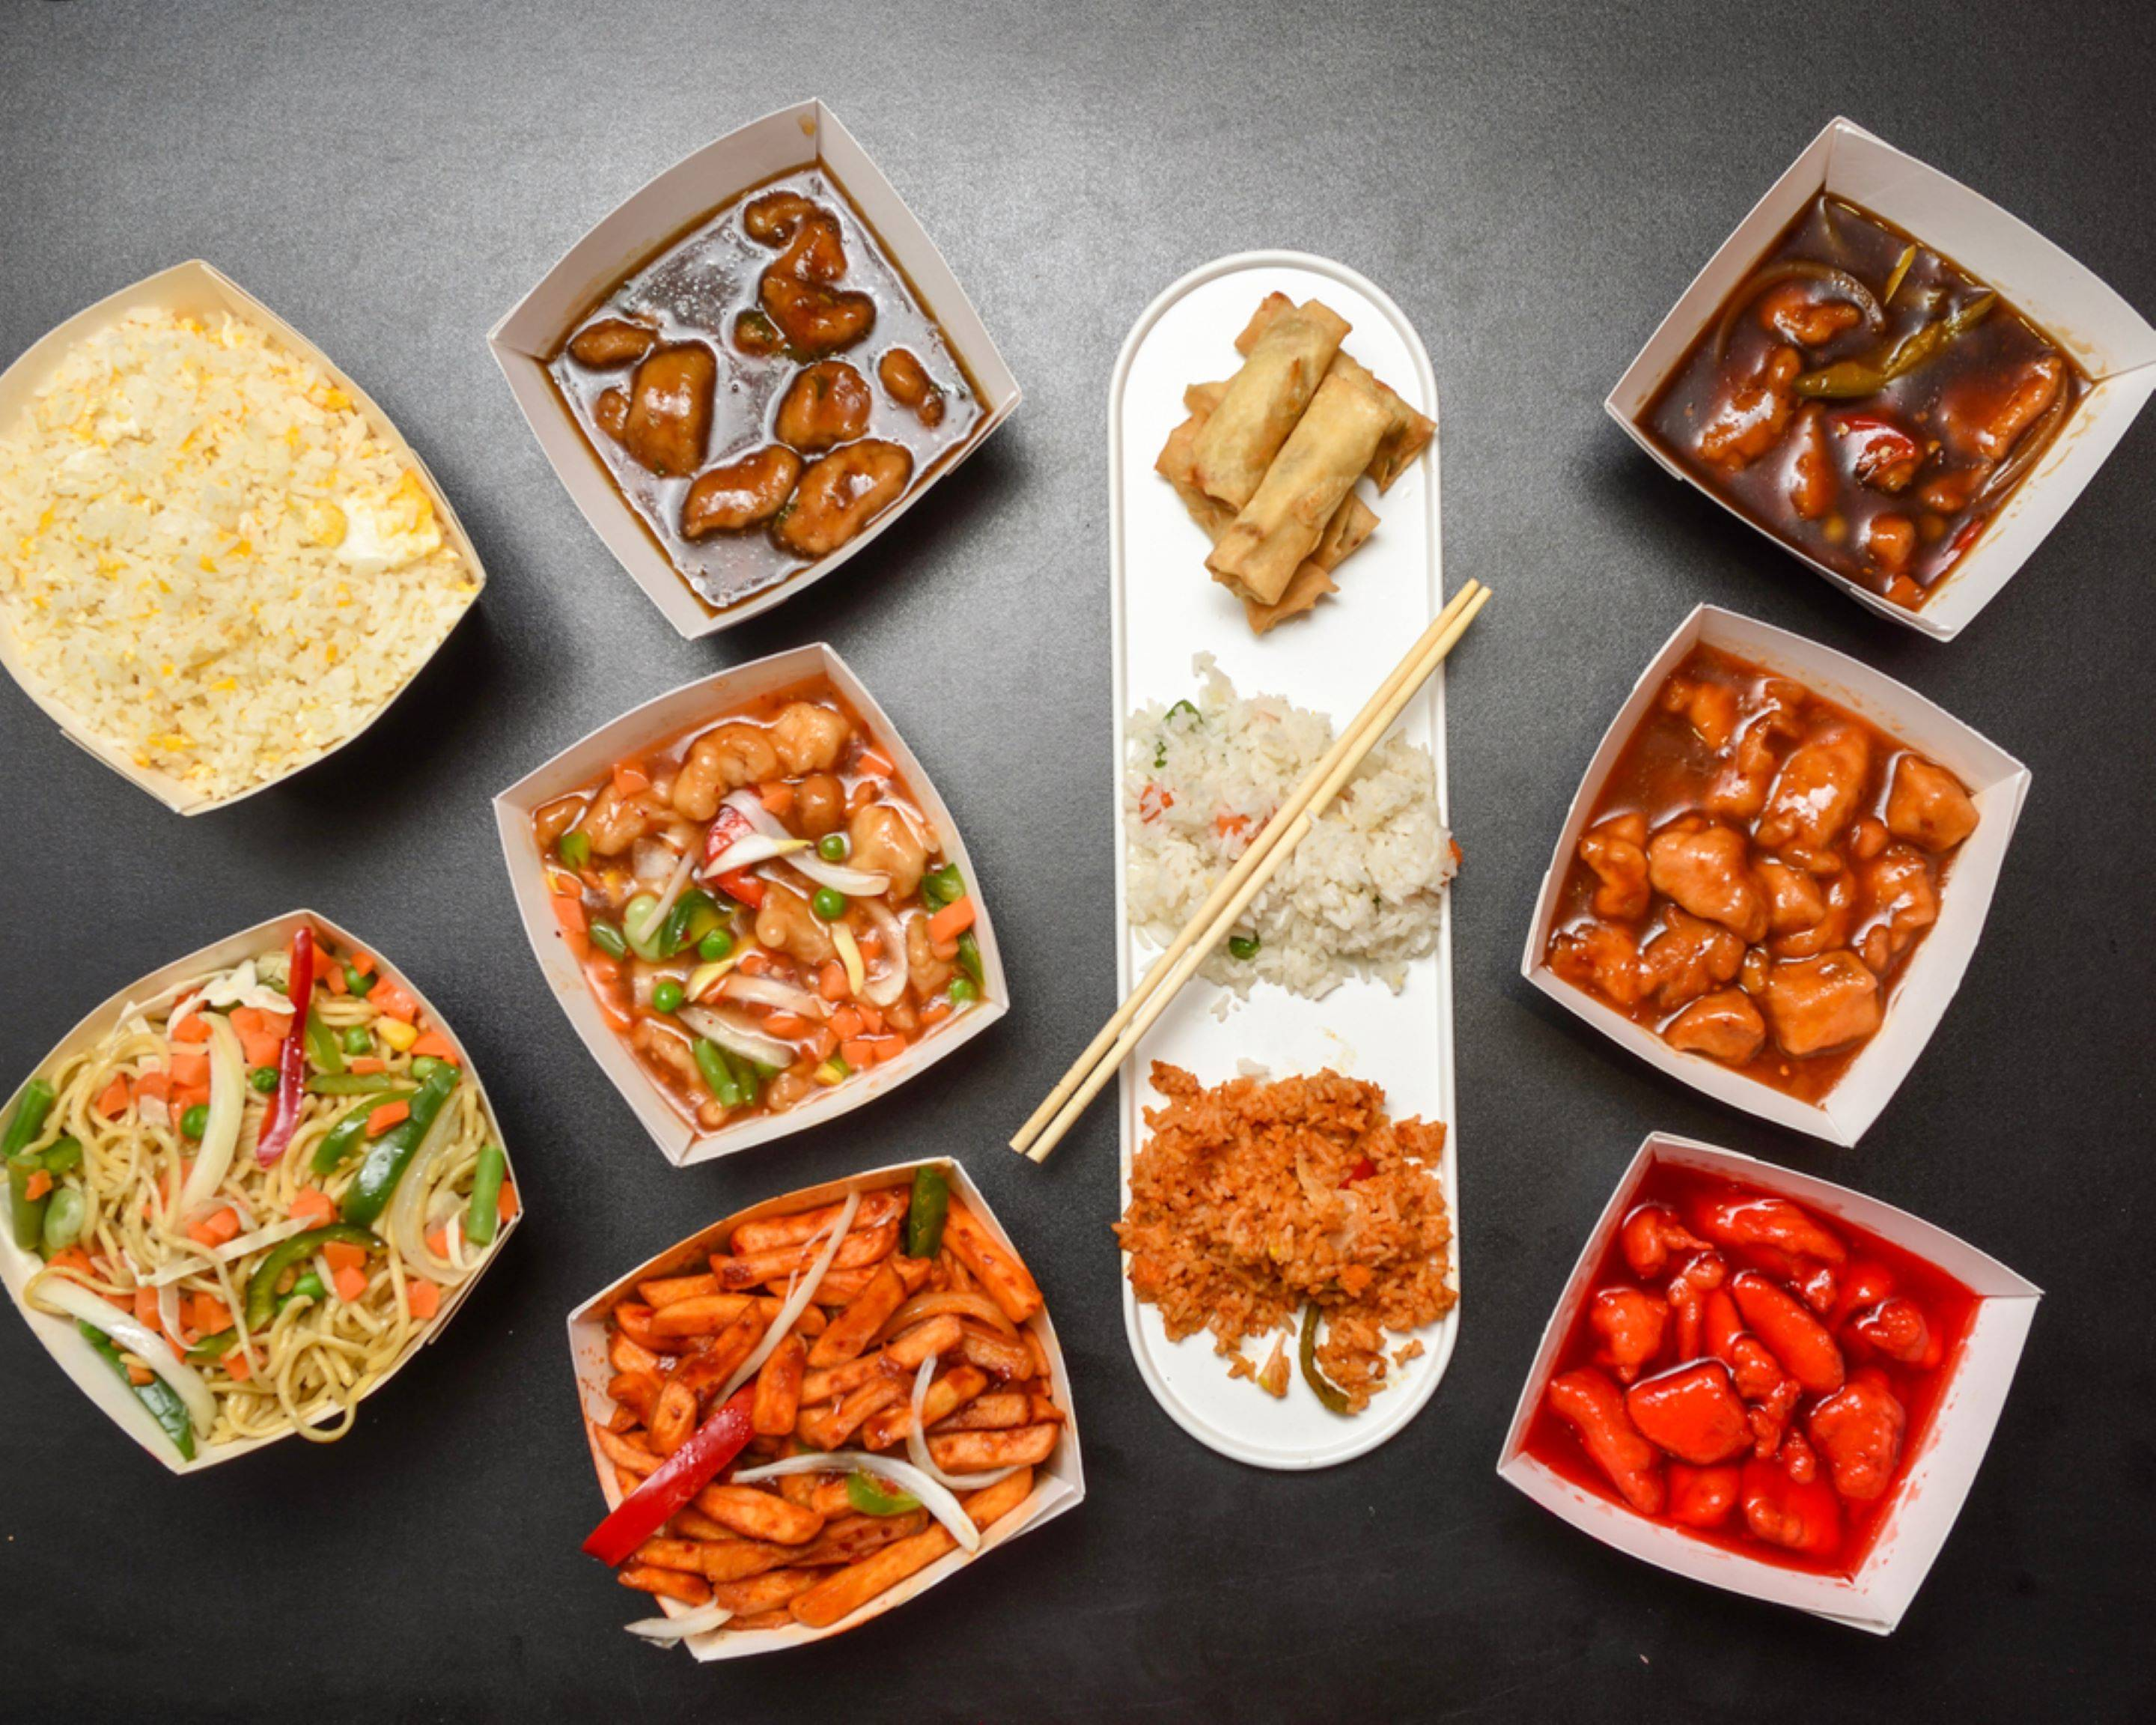 Oodles Chinese Mansfield Road Delivery Uber Eats